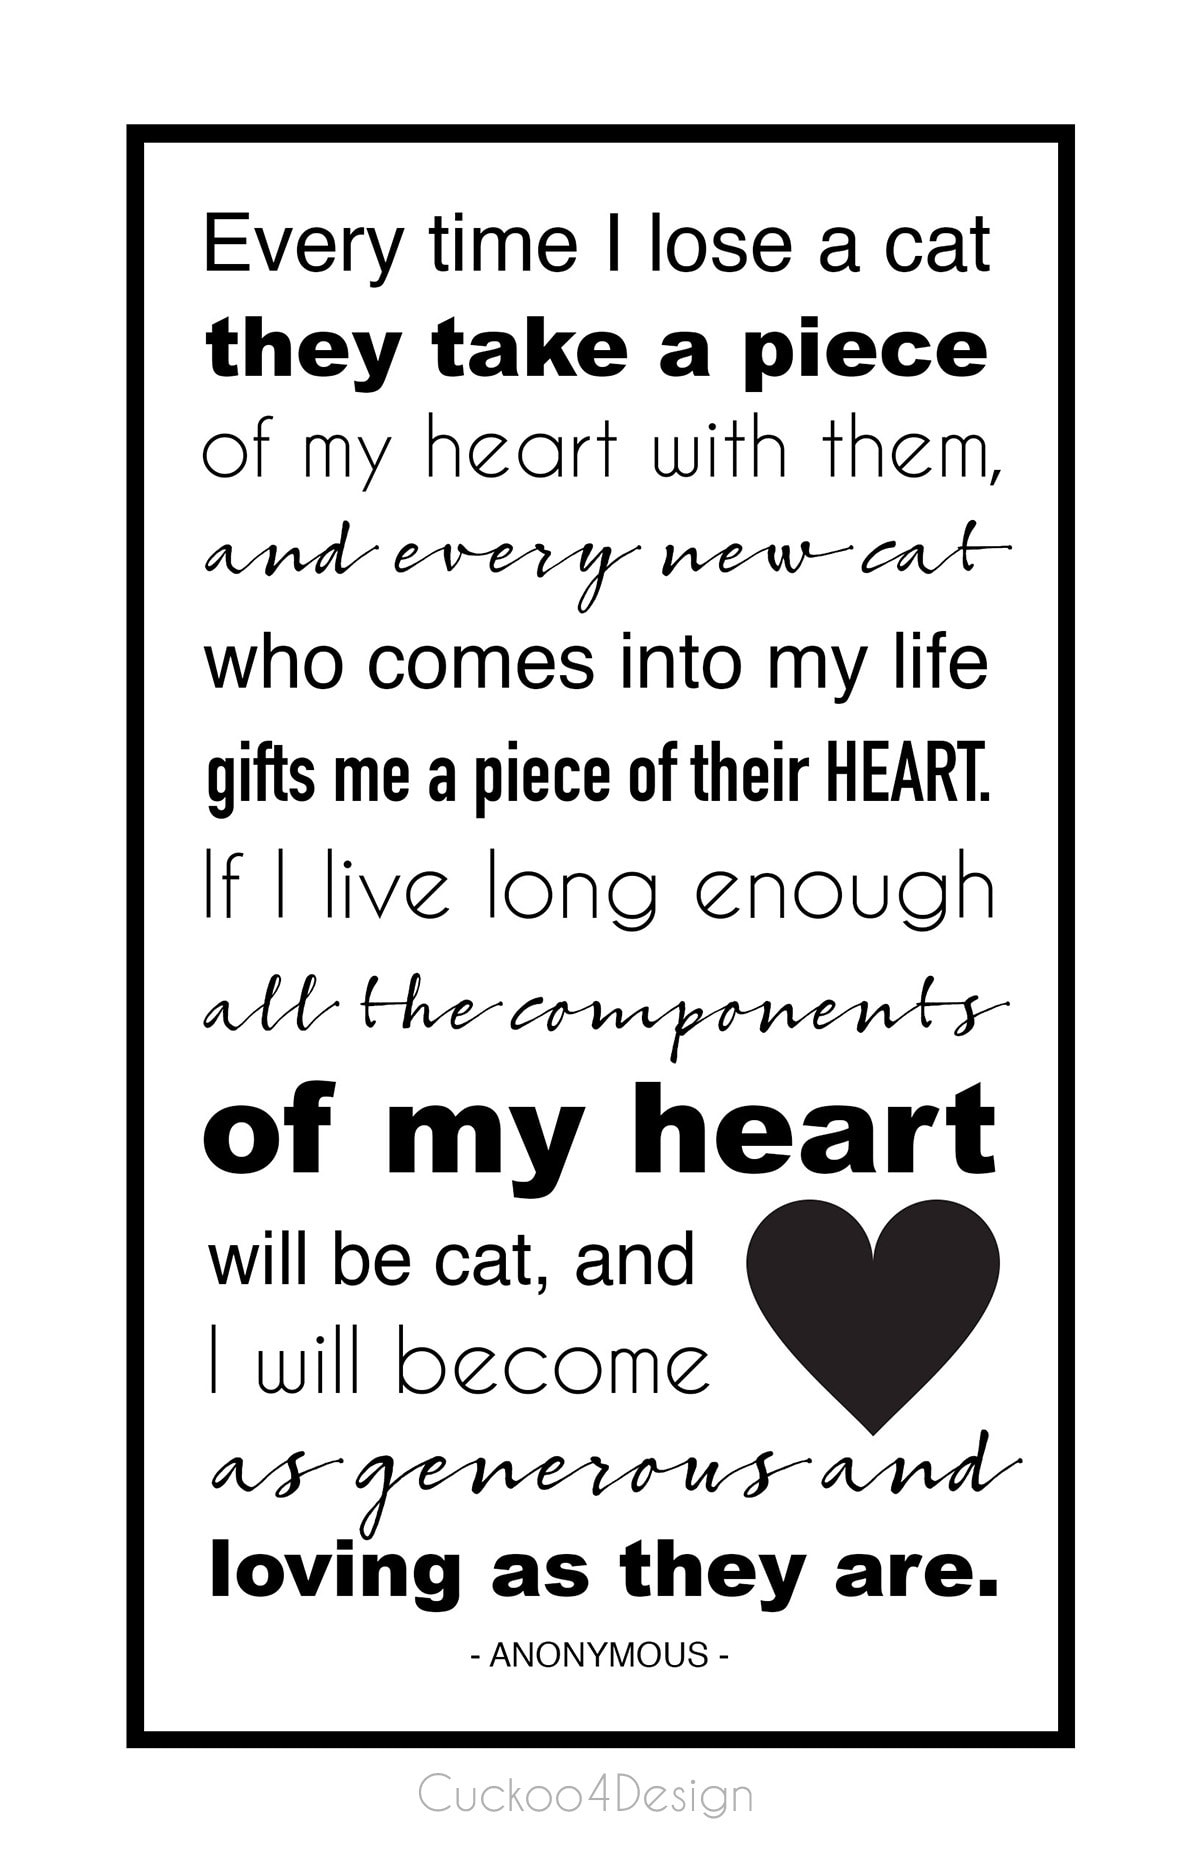 It came to me that every time I lose a cat they take a piece of my heart with them, and every new cat who comes into my life gifts me a piece of their heart. If I live long enough all the components of my heart will be cat and I will becomes as generous and loving as they are.